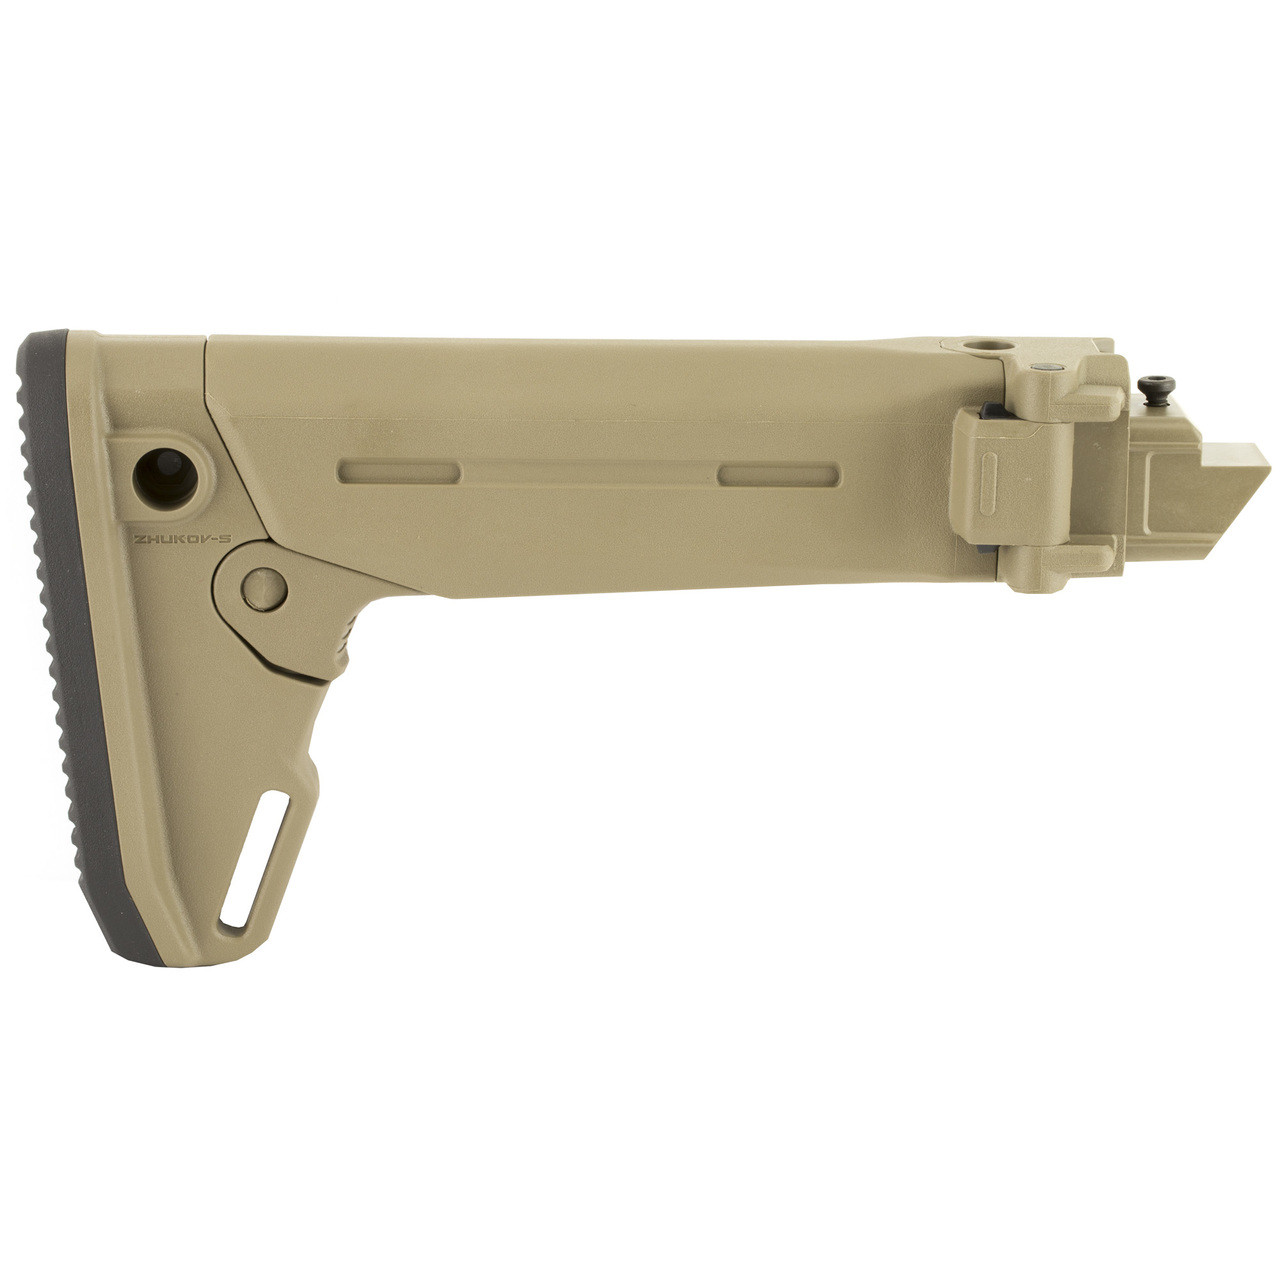 Magpul Industries Zhukov-S Stock, Fits AK Rifles Except Yugo Pattern AKs or  Norinco Type 56s/MAK90 Rifles, Flat Dark Earth Finish, 5-Position Length